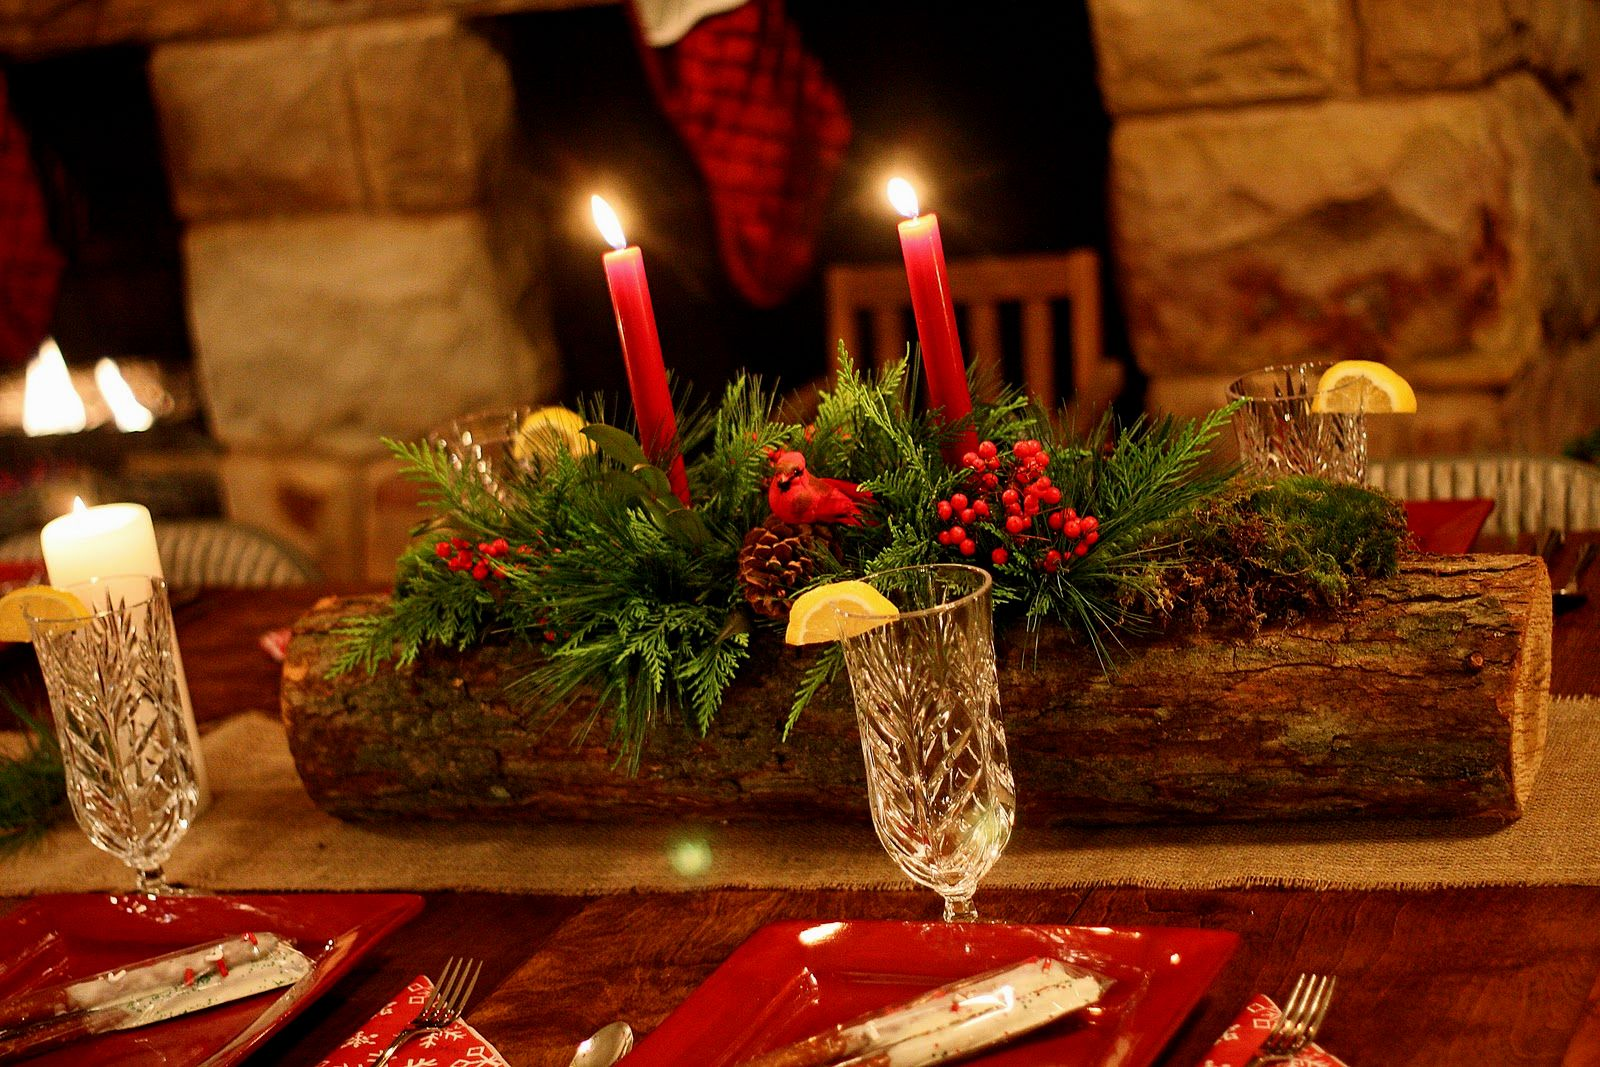 homemade-christmas-table-decorations-centerpieces-christmas-table-decorations-centerpieces.jpg